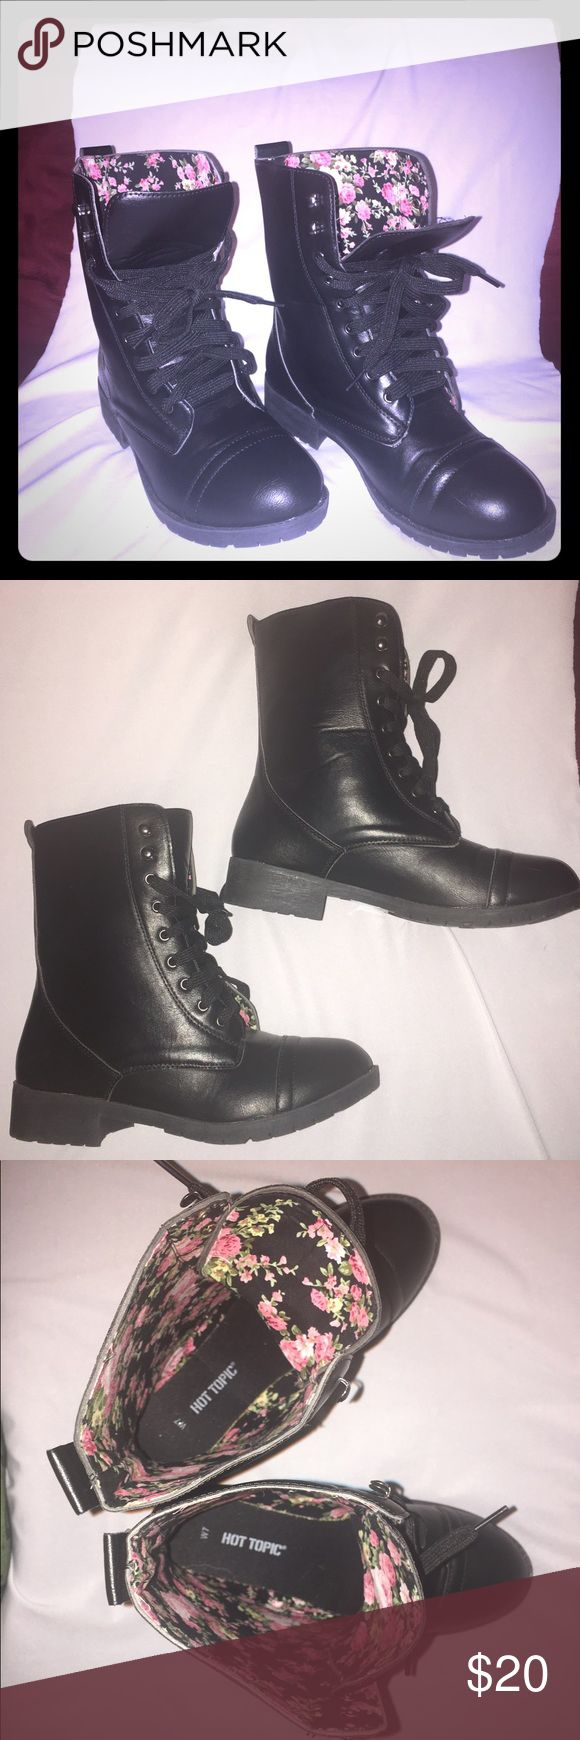 Hot Topic Black Combat Boots Hot Topic Black Combat Boots with a floral print on the inside. Size 7. Never worn. Hot Topic Shoes Combat & Moto Boots